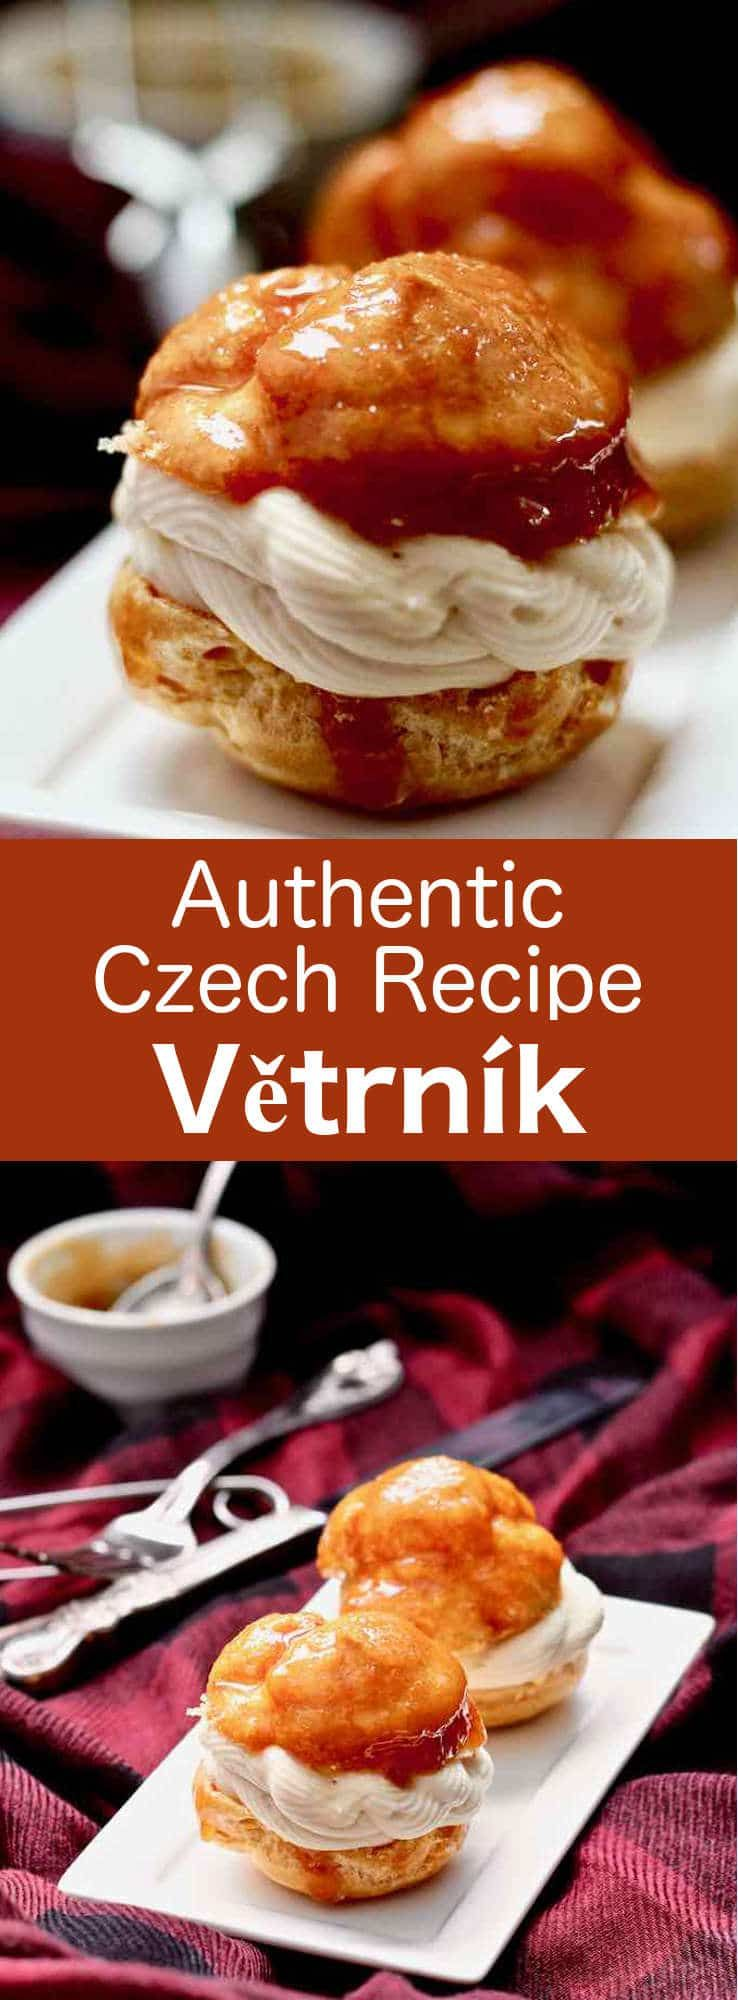 Větrník is a delicious little choux pastry topped with caramel and vanilla cream, and covered with a glossy caramel icing, that is popular in the Czech Republic. #CzechRepublic #CzechCuisine #CzechRecipe #Dessert #CzechDessert #Vegetarian #WorldCuisine #196flavors #czechrecipes